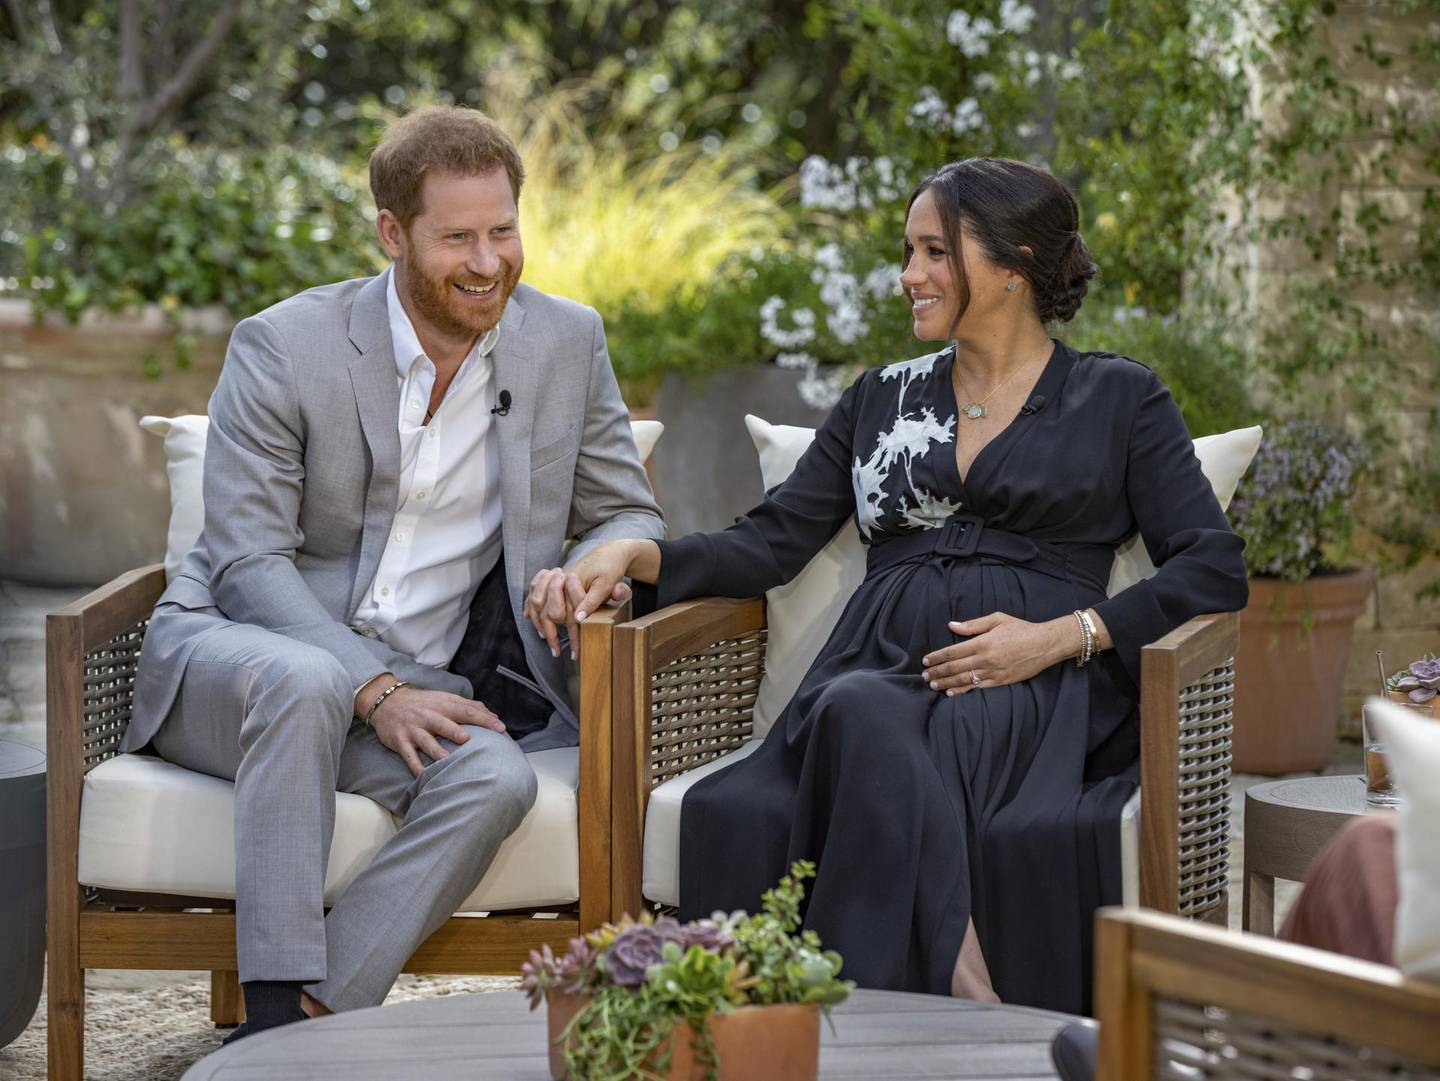 """This image provided by Harpo Productions shows Prince Harry, left, and Meghan, Duchess of Sussex, speaking about expecting their second child during an interview with Oprah Winfrey. """"Oprah with Meghan and Harry: A CBS Primetime Special"""" airs March 7 as a two-hour exclusive primetime special on the CBS Television Network. (Joe Pugliese/Harpo Productions via AP)"""